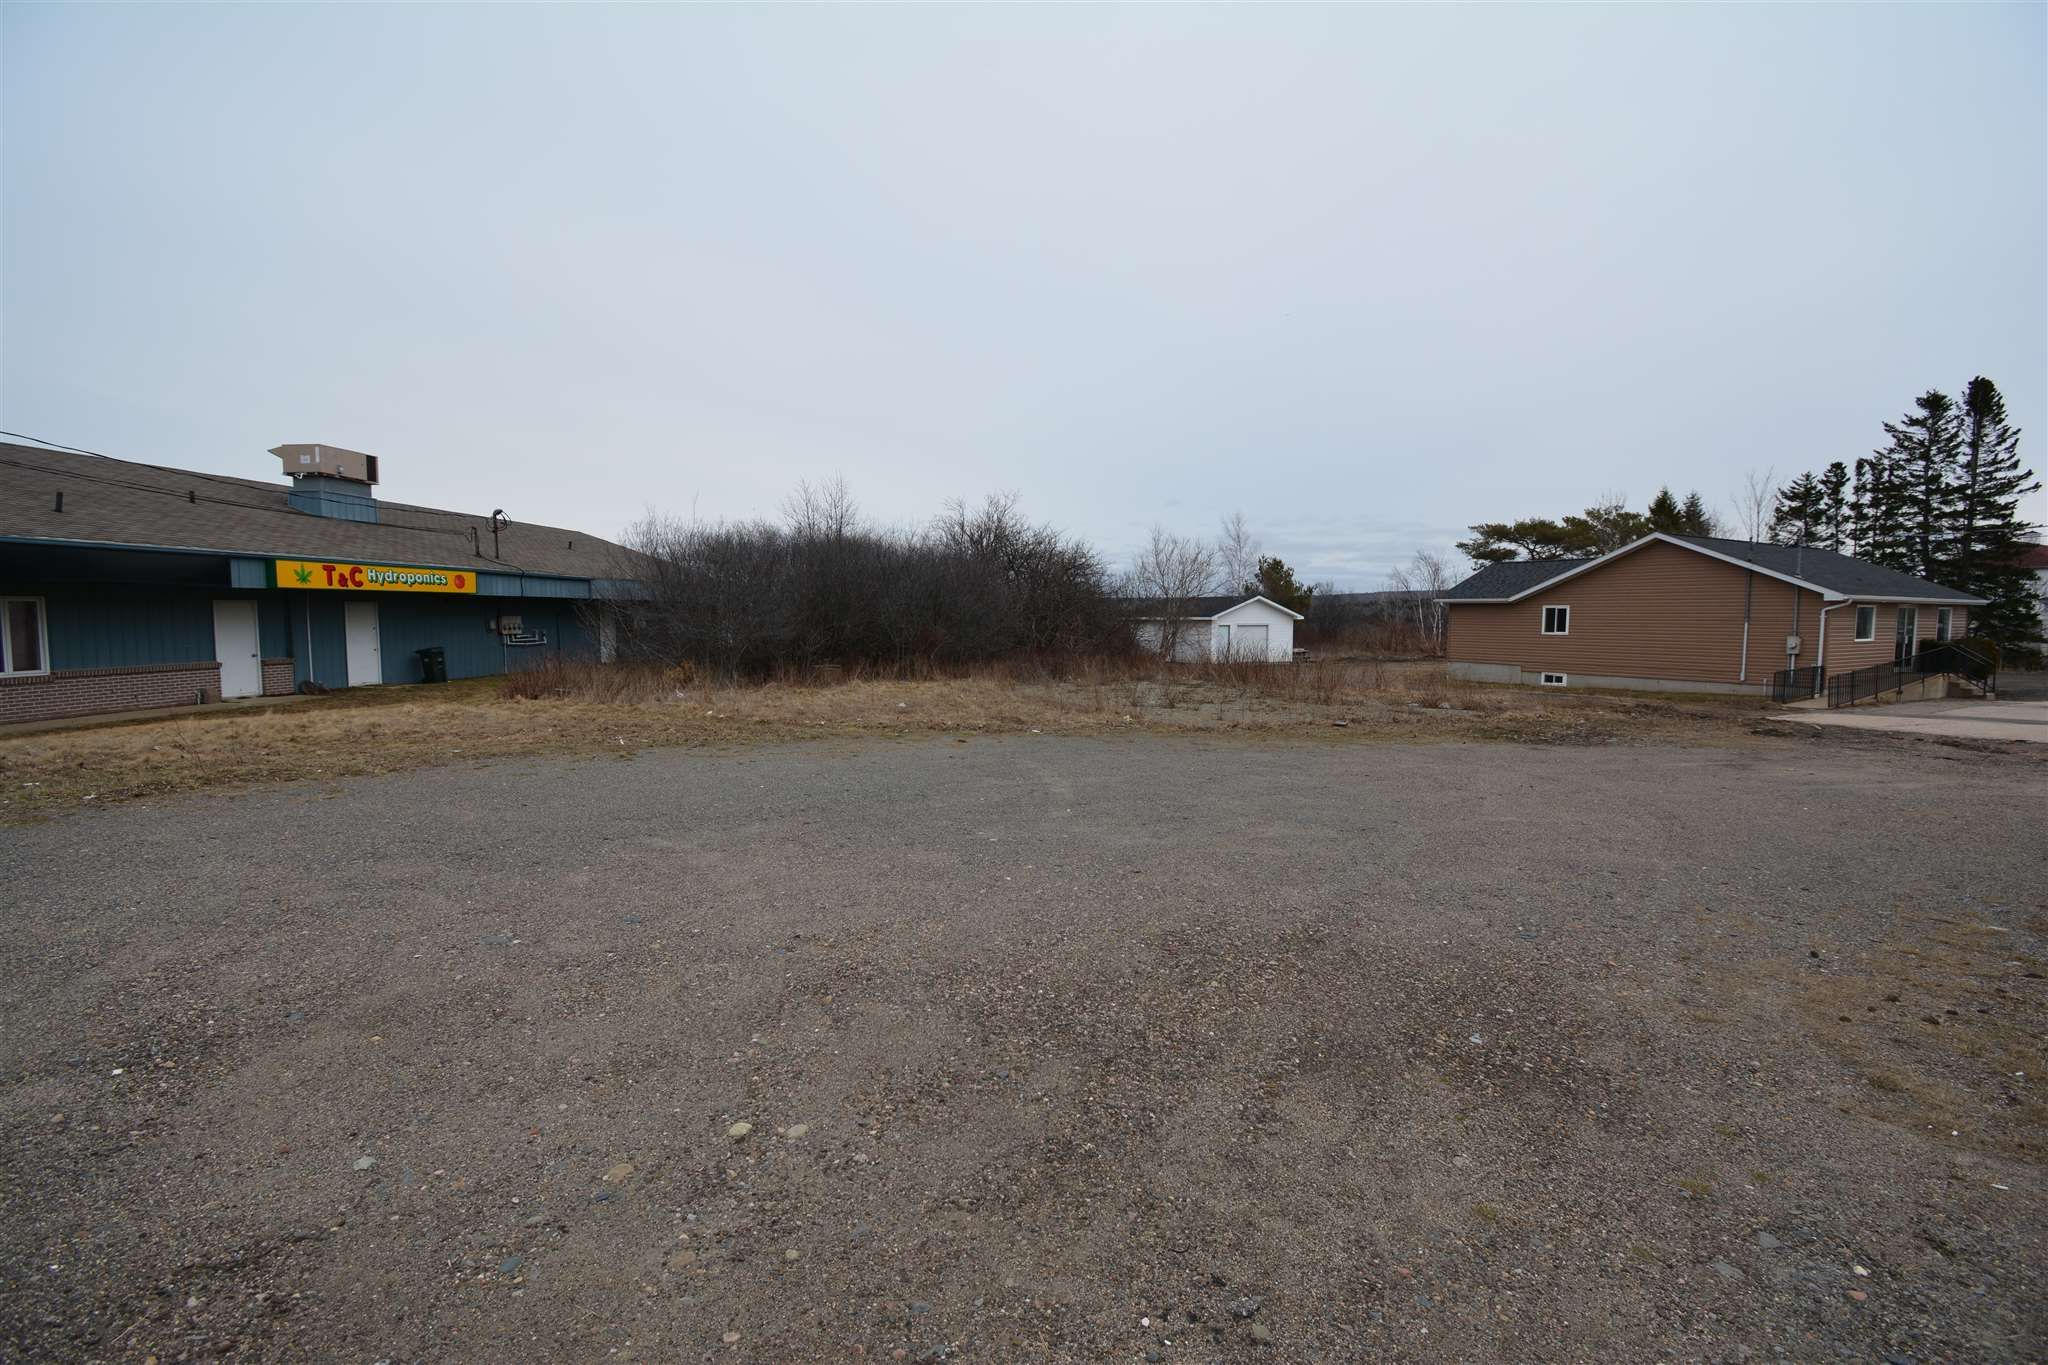 Main Photo: 315 HIGHWAY 303 in Conway: 401-Digby County Vacant Land for sale (Annapolis Valley)  : MLS®# 202106328